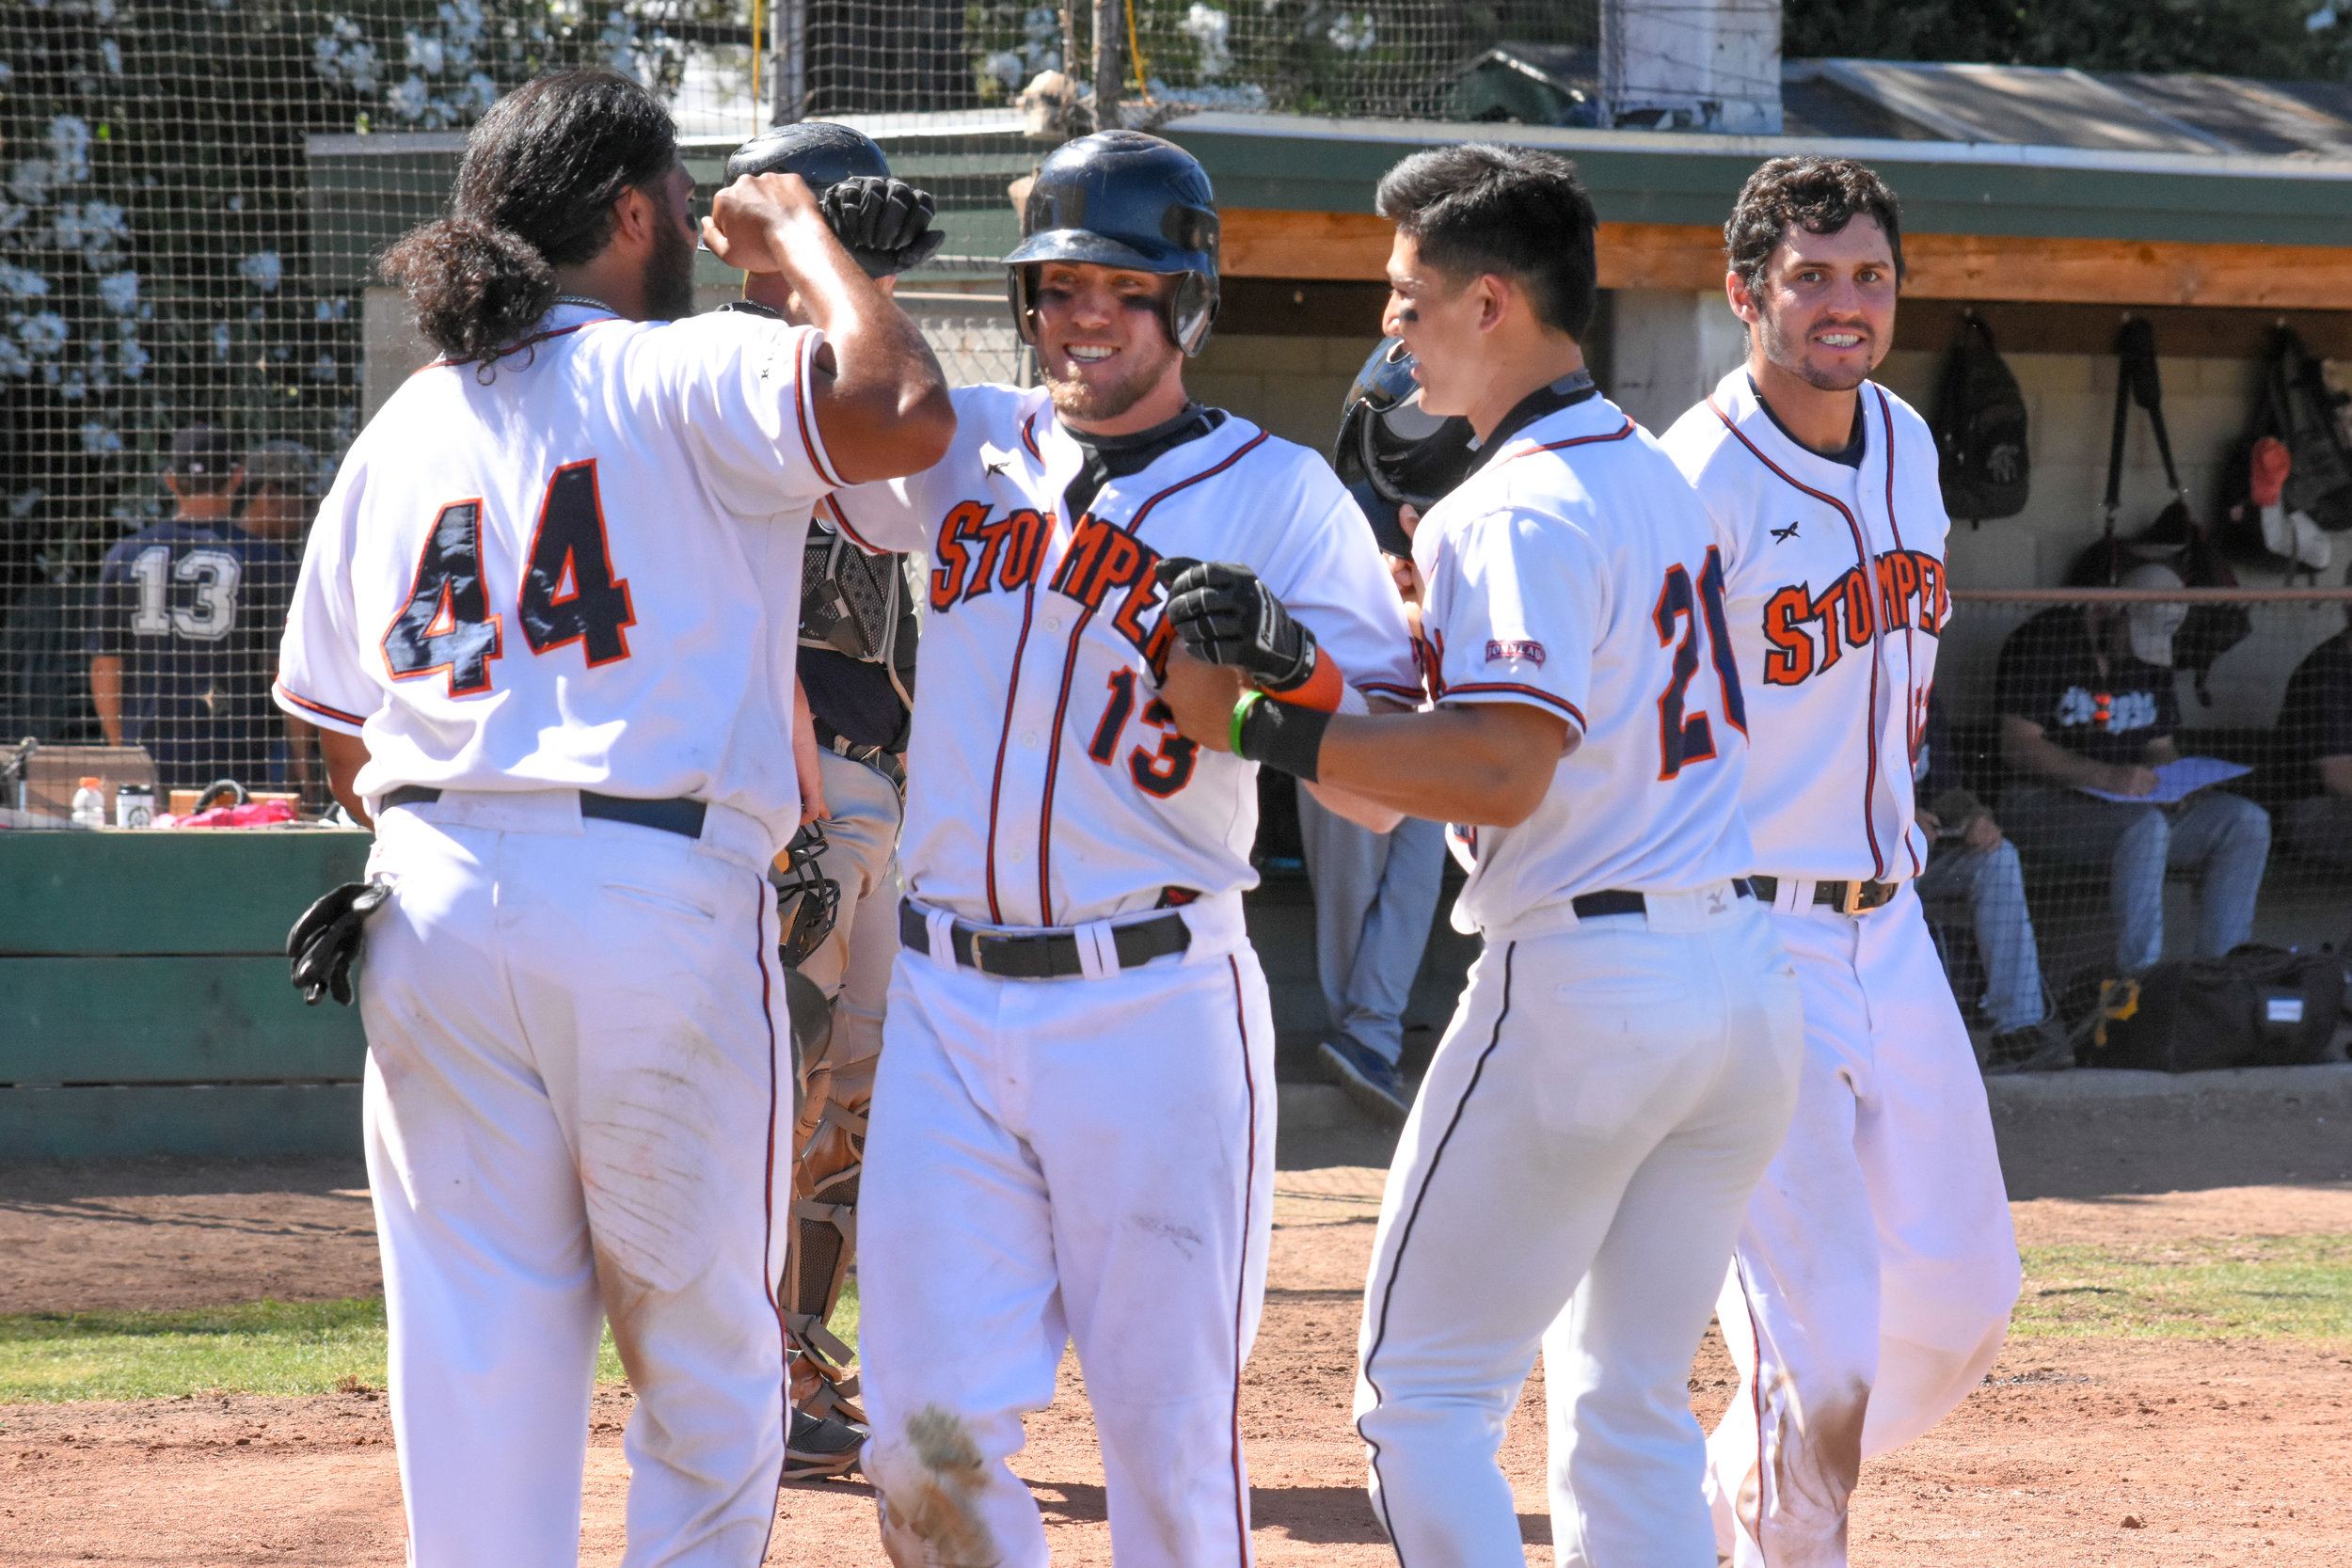 Kevin Farley (13) celebrates with Daniel Baptista (44) and Mitchell Ho (20) after hitting a go-ahead grand slam in the 7th inning on Sunday, July 8, 2018 (James W. Toy III / Sonoma Stompers)